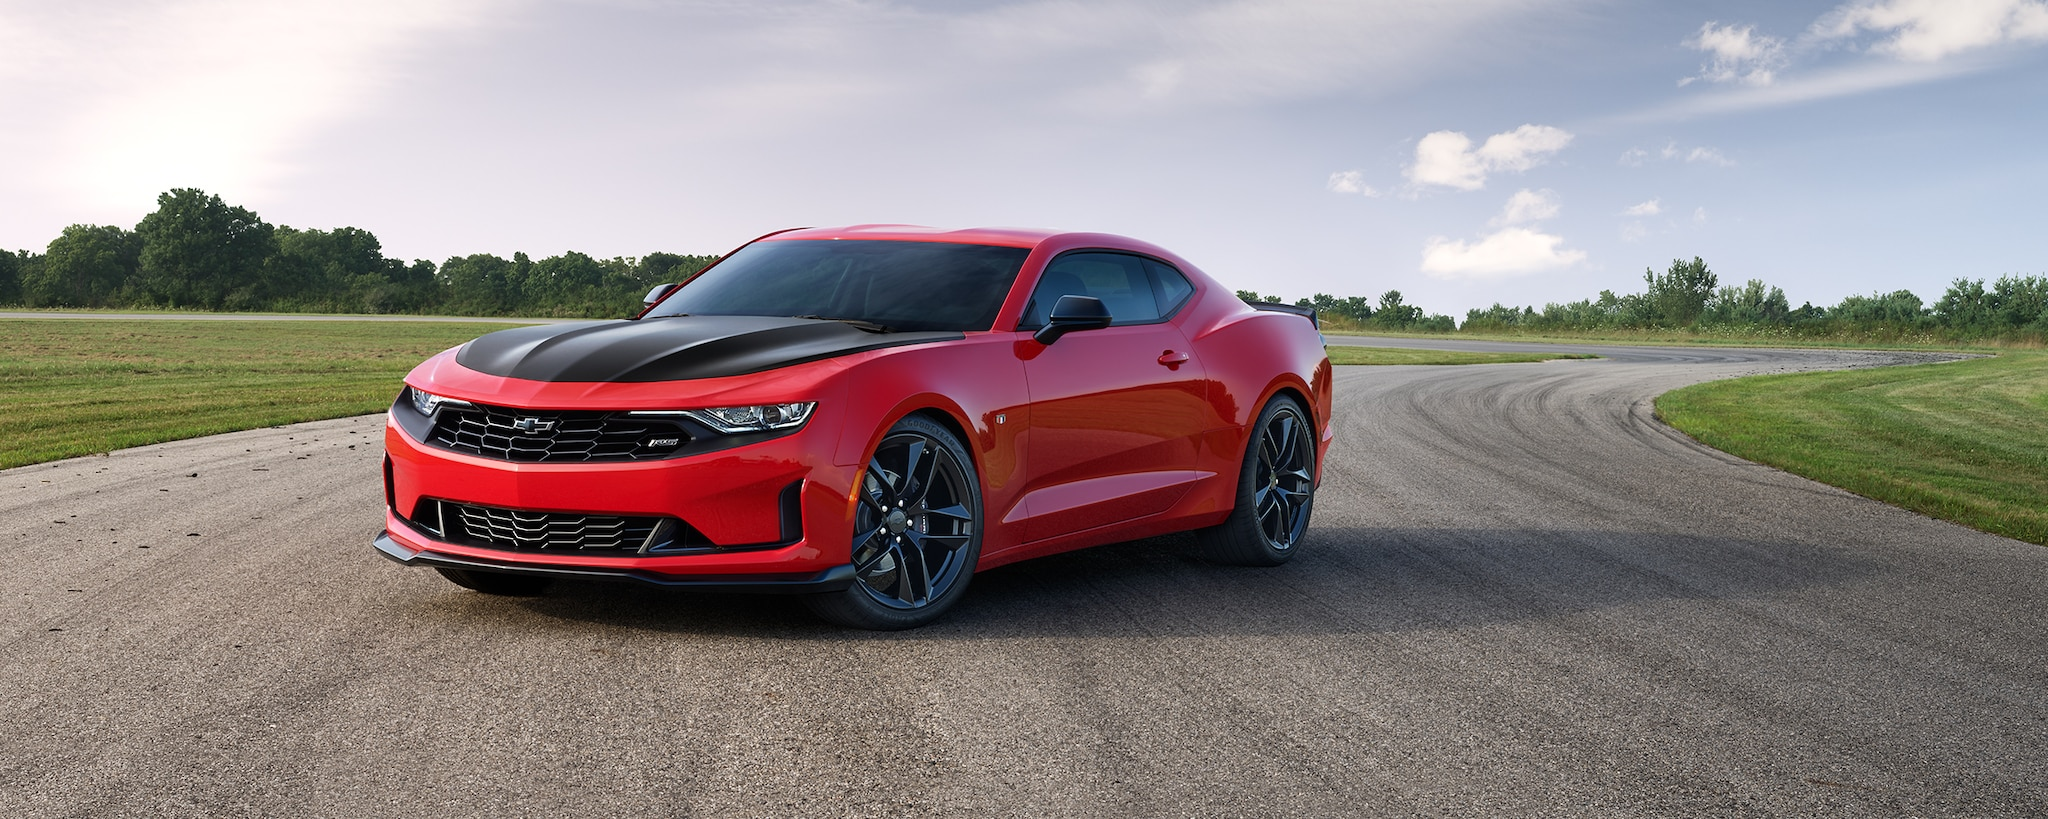 Camaro 2019: 1LE conductor vista frontal